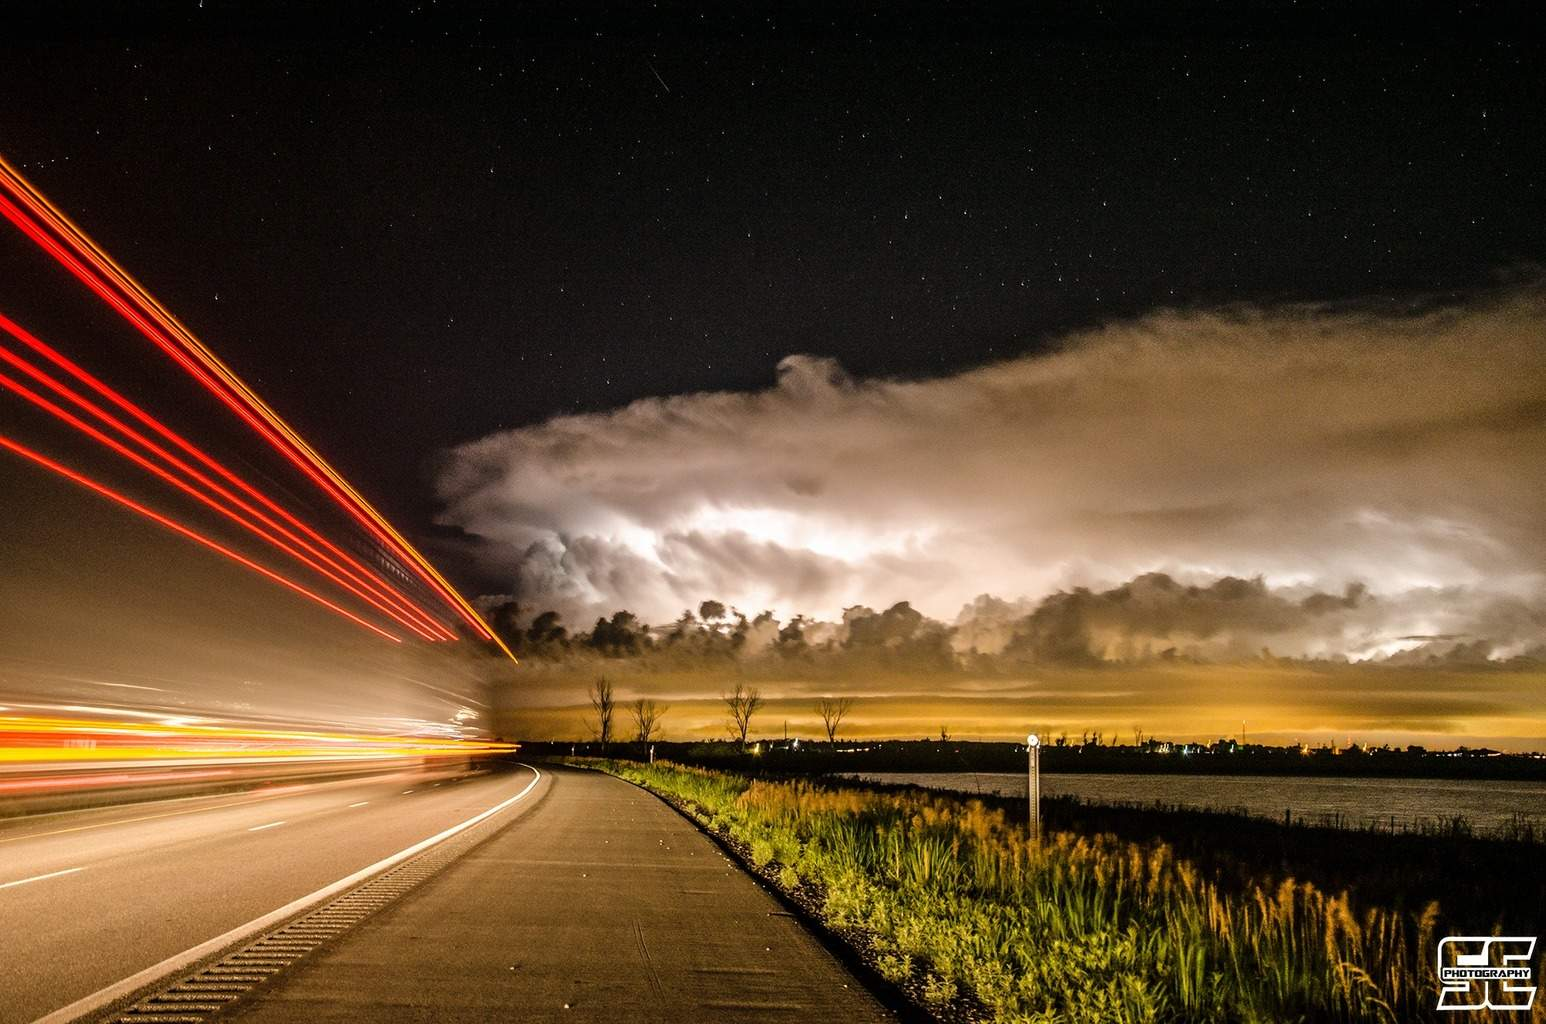 Unique shot of car trails leading into the severe storm with insane lightning south of Omaha, NE during the early morning hours of June 29th.